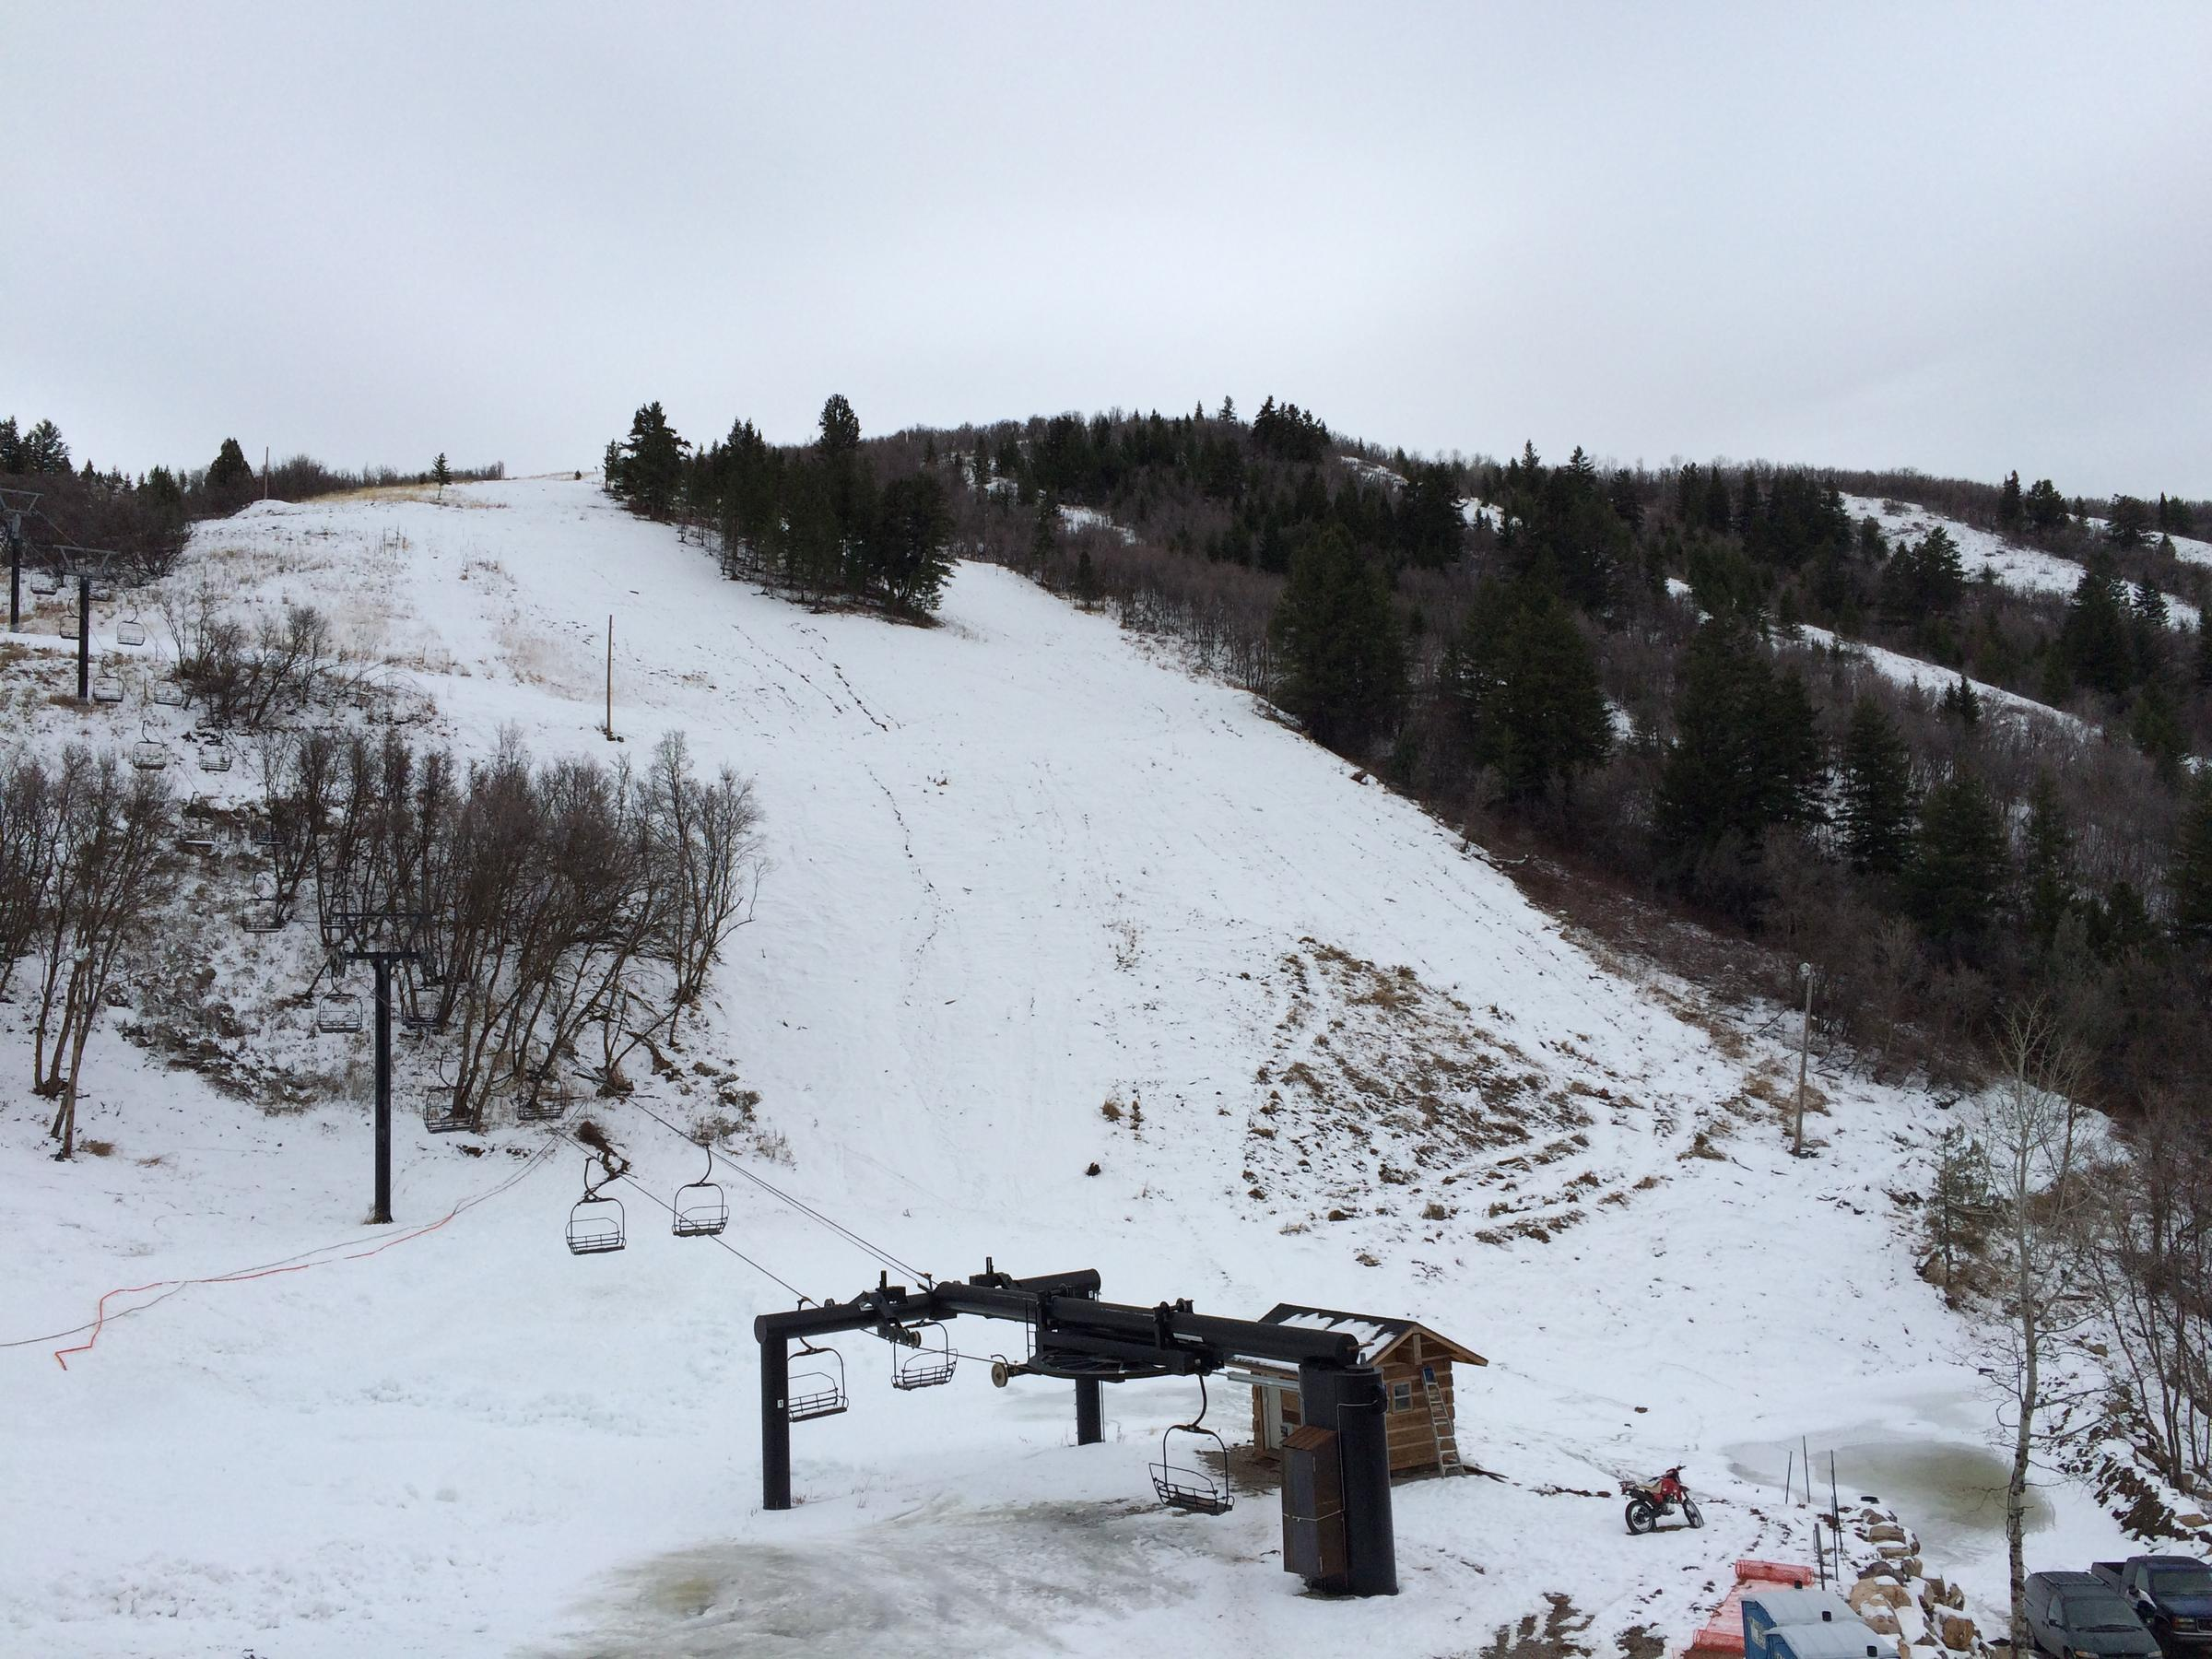 cherry peak resort to open this winter | upr utah public radio